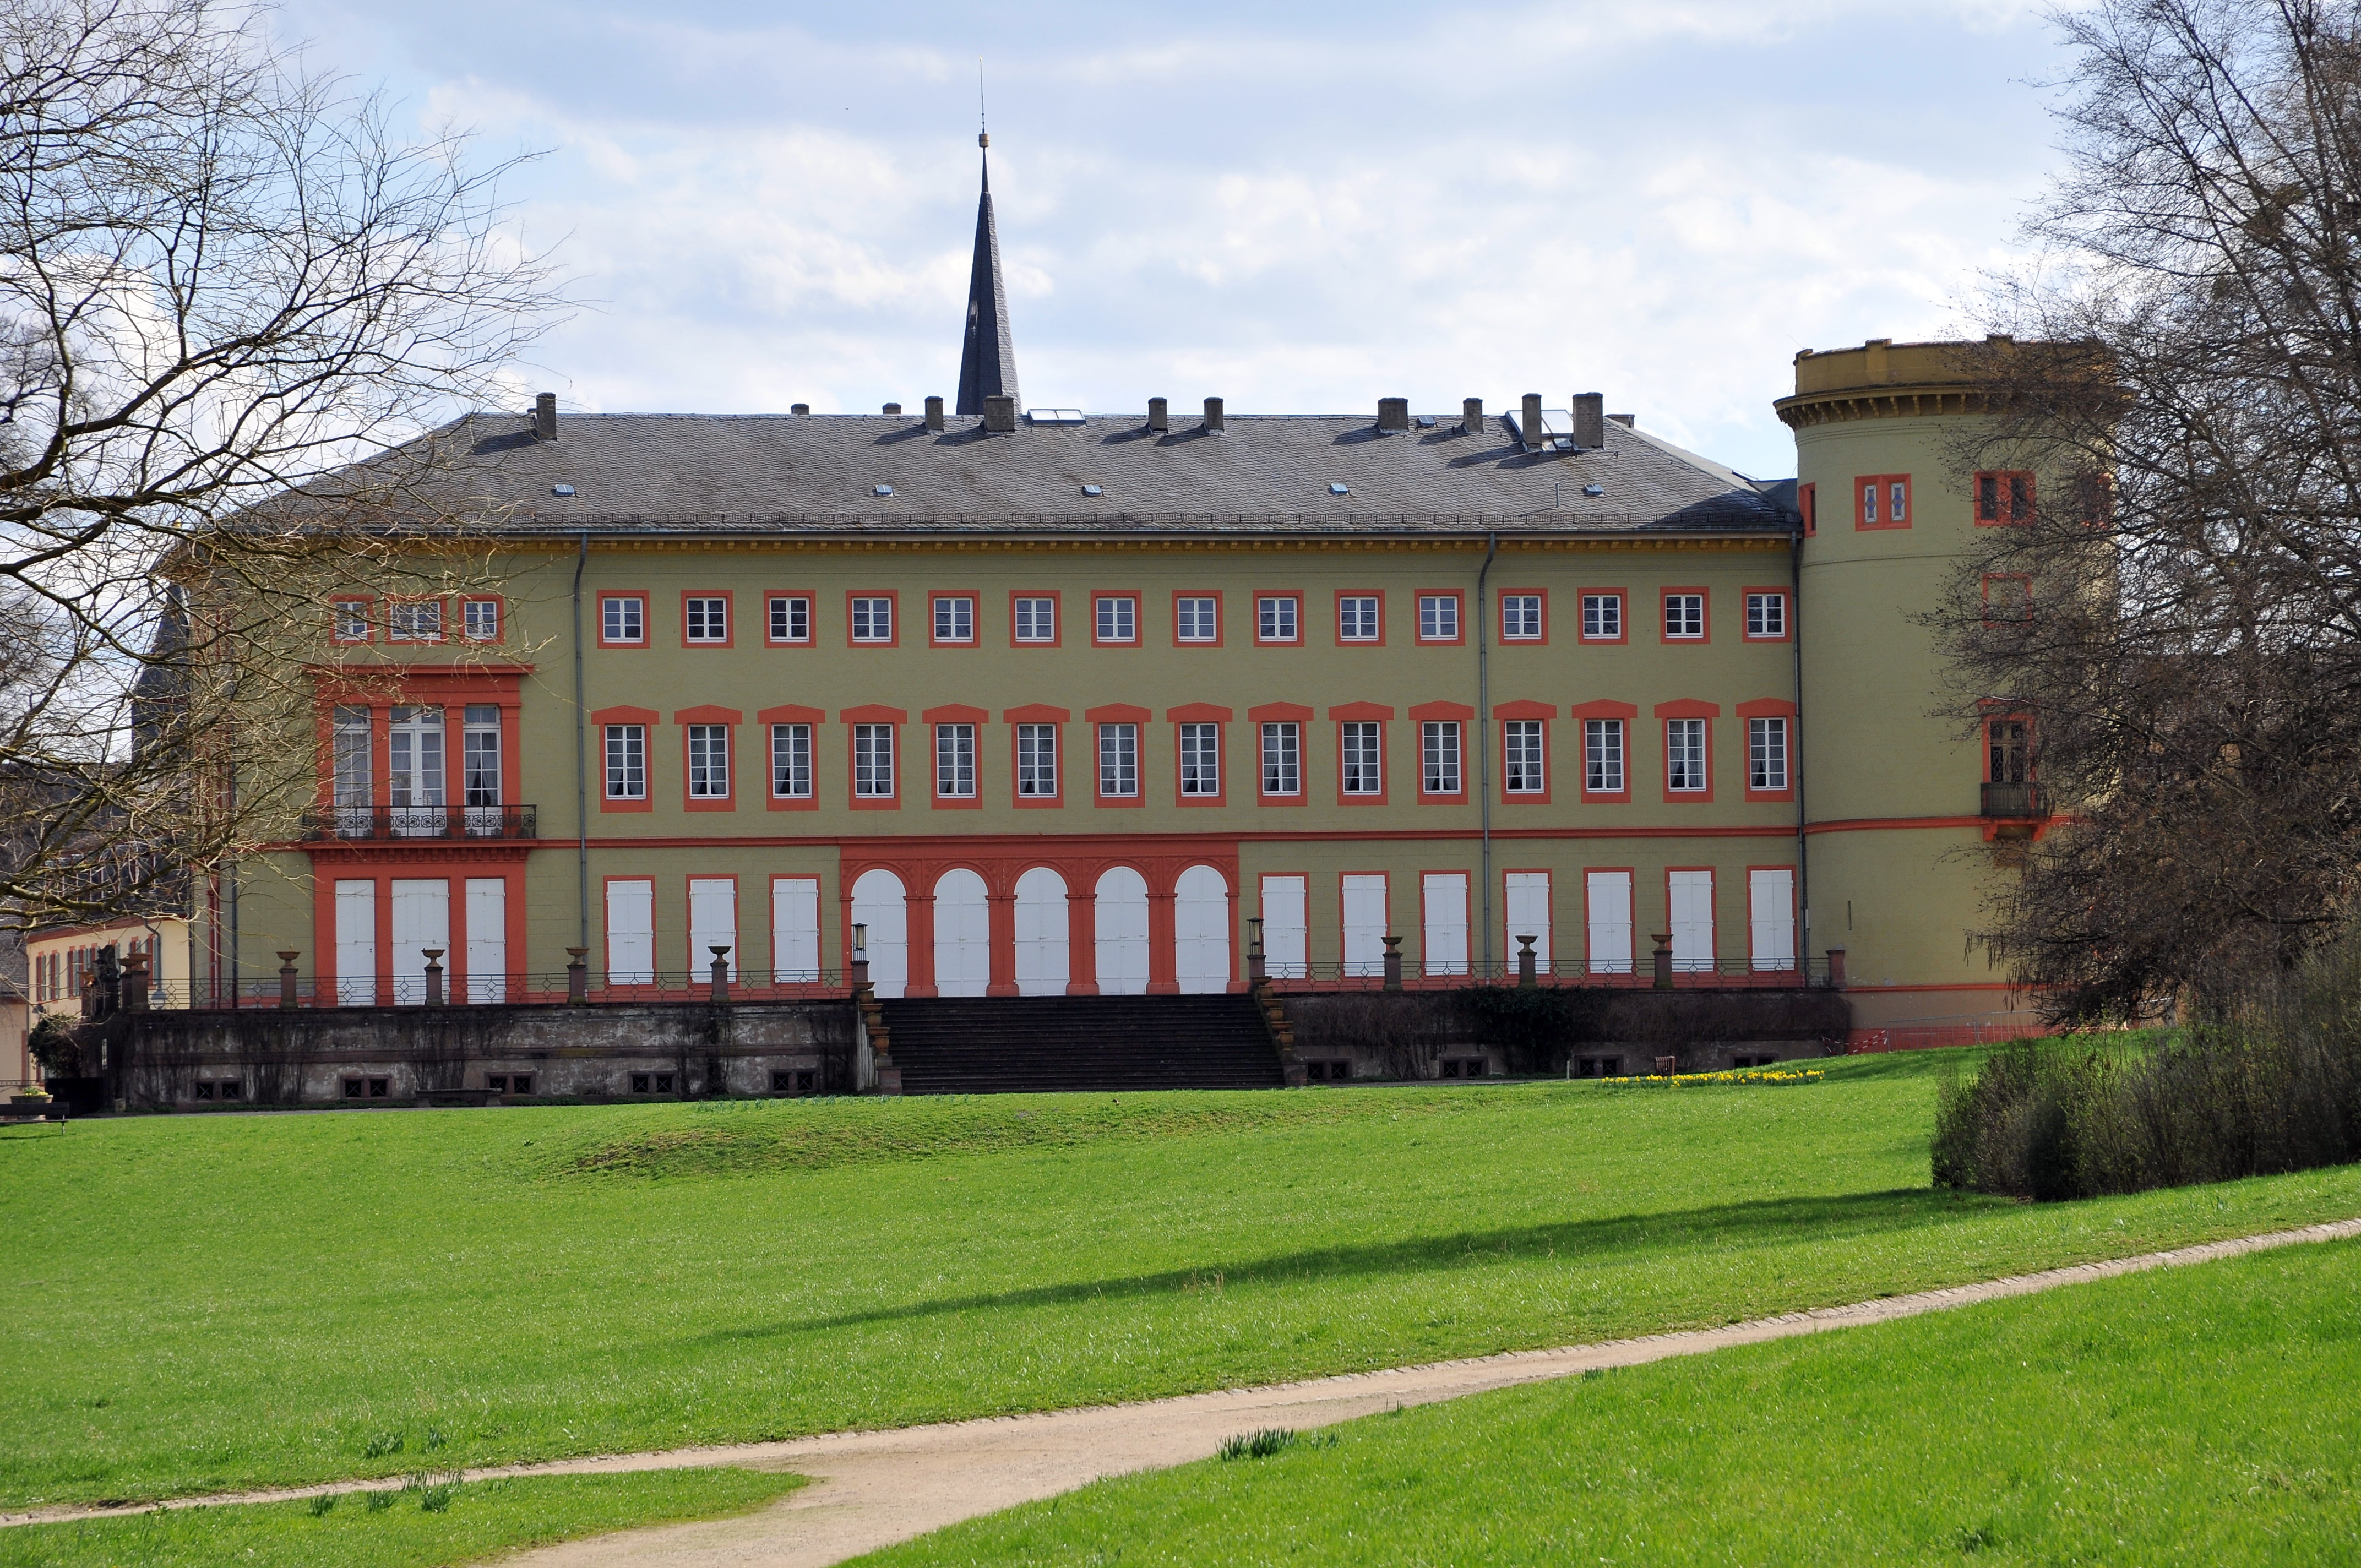 Palace of worms.